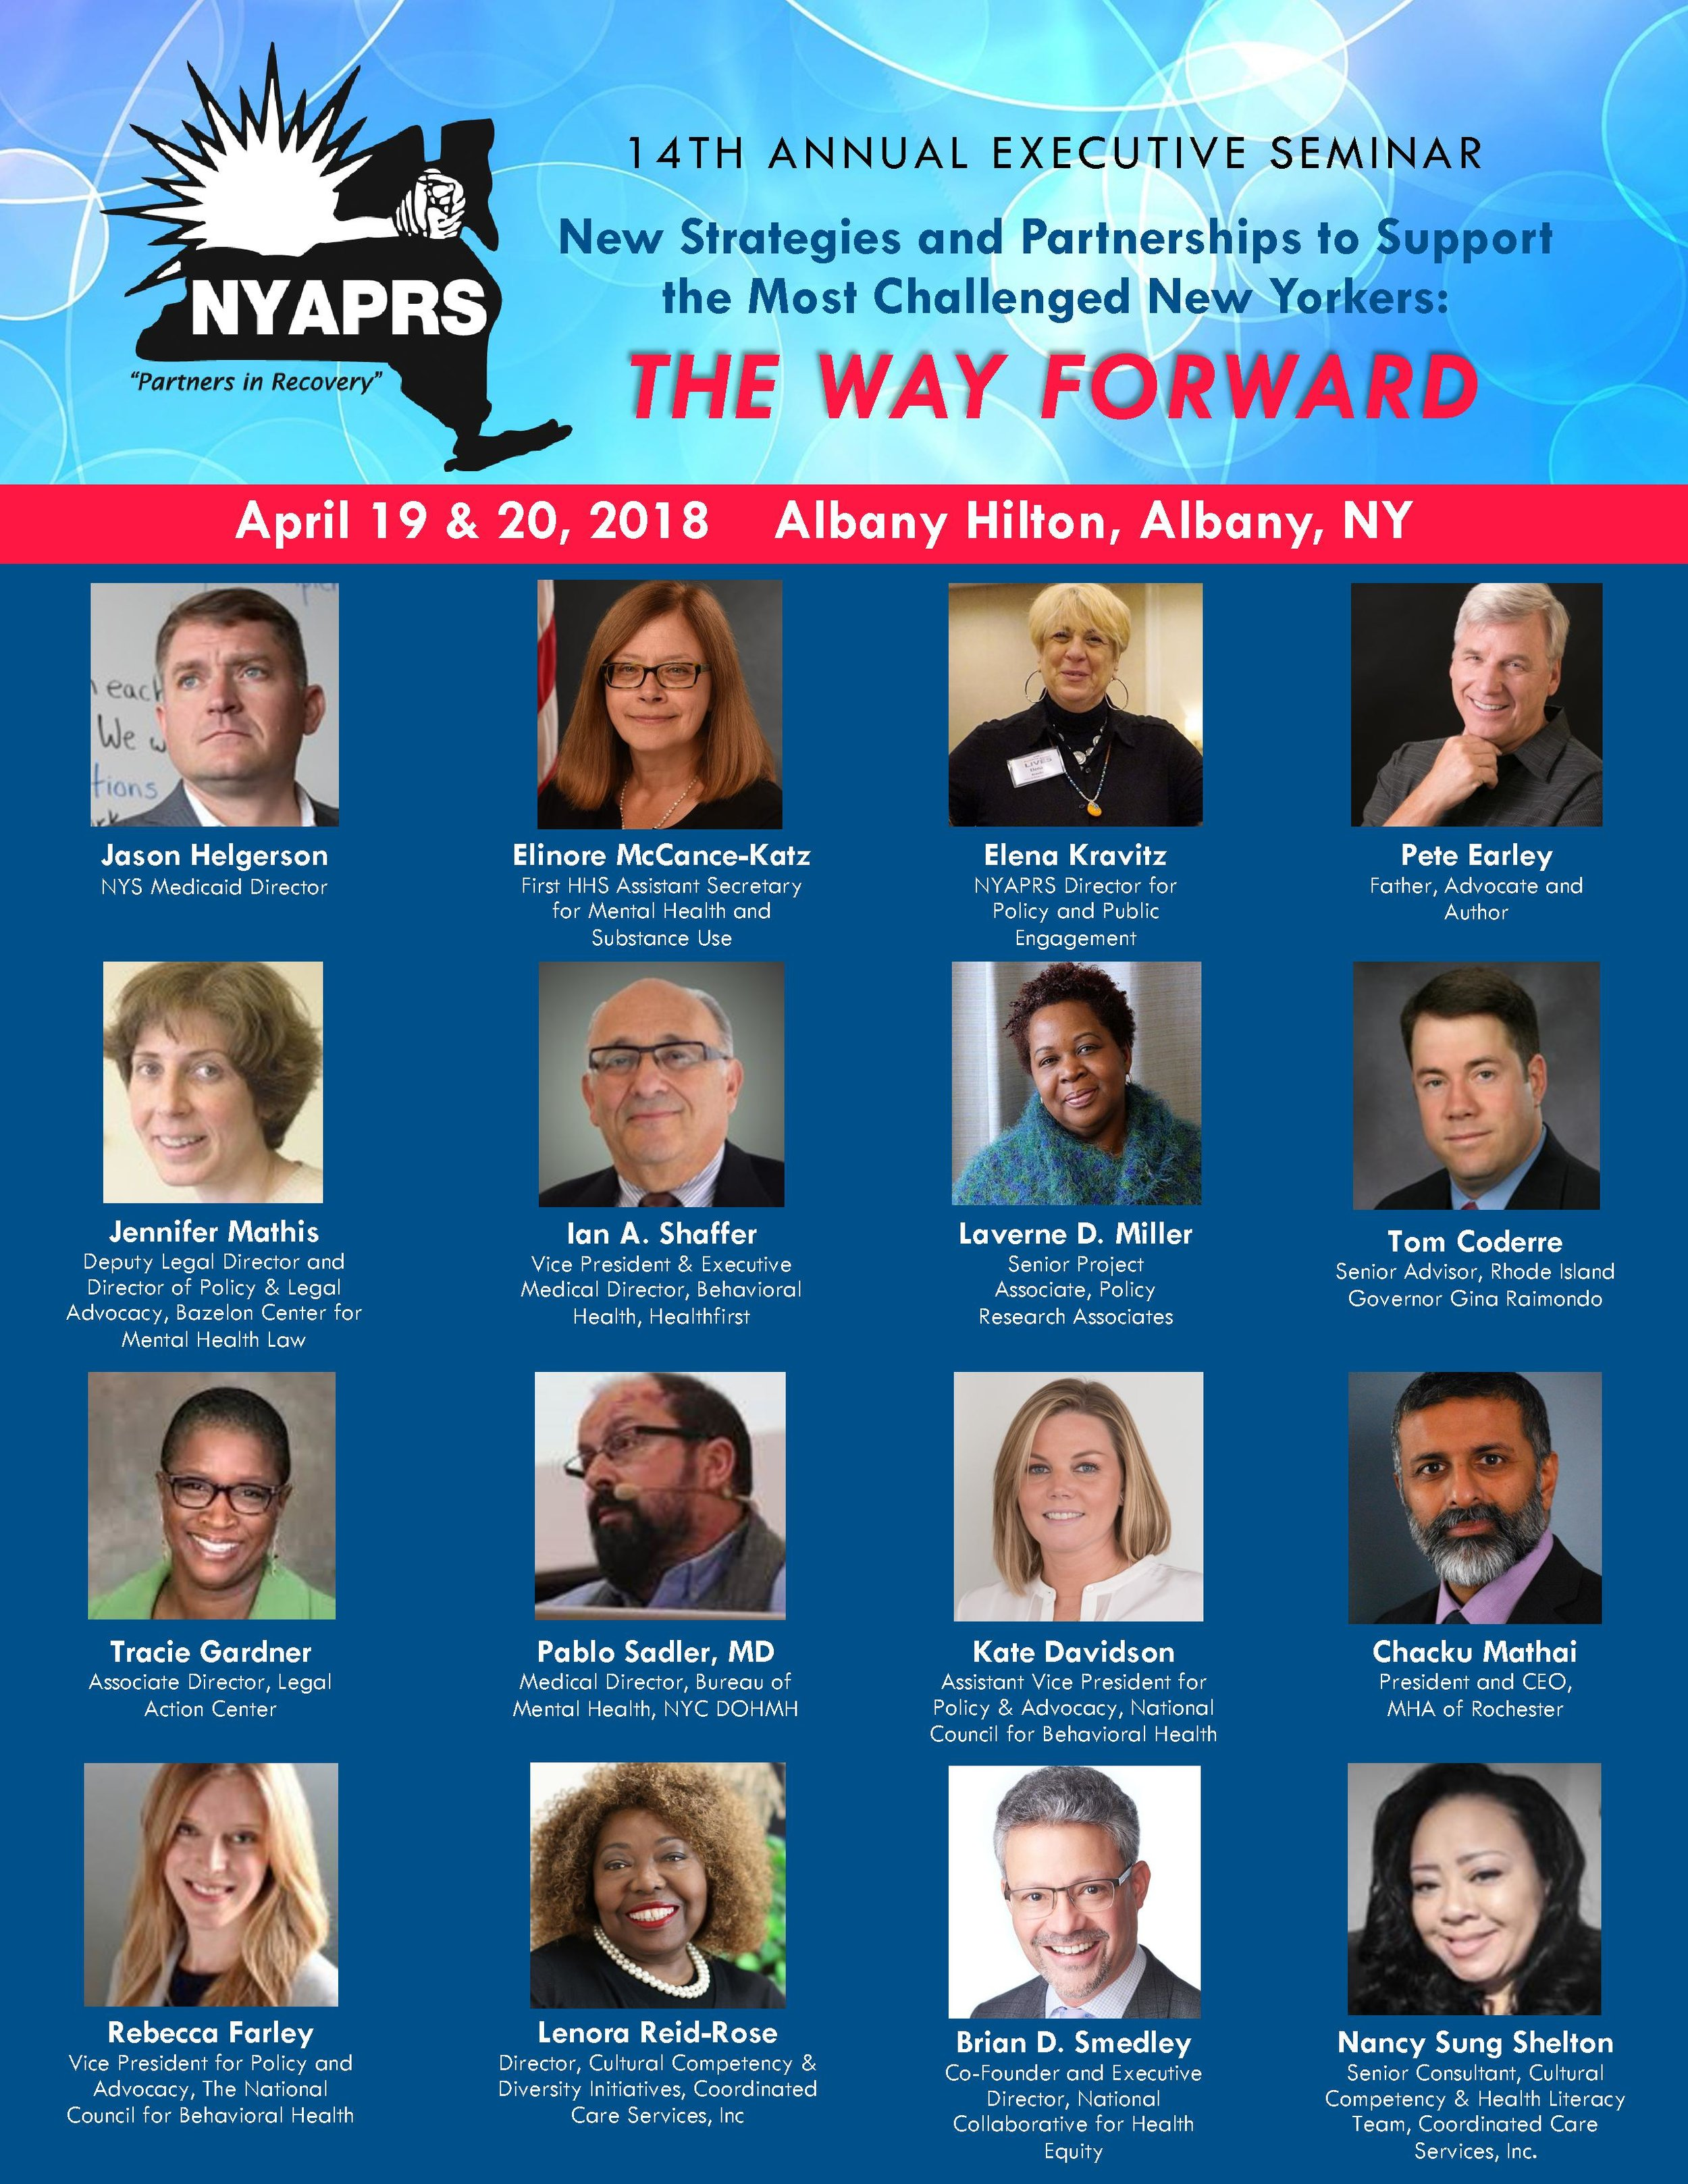 NYAPRS 2018 Executive Seminar Program.jpg